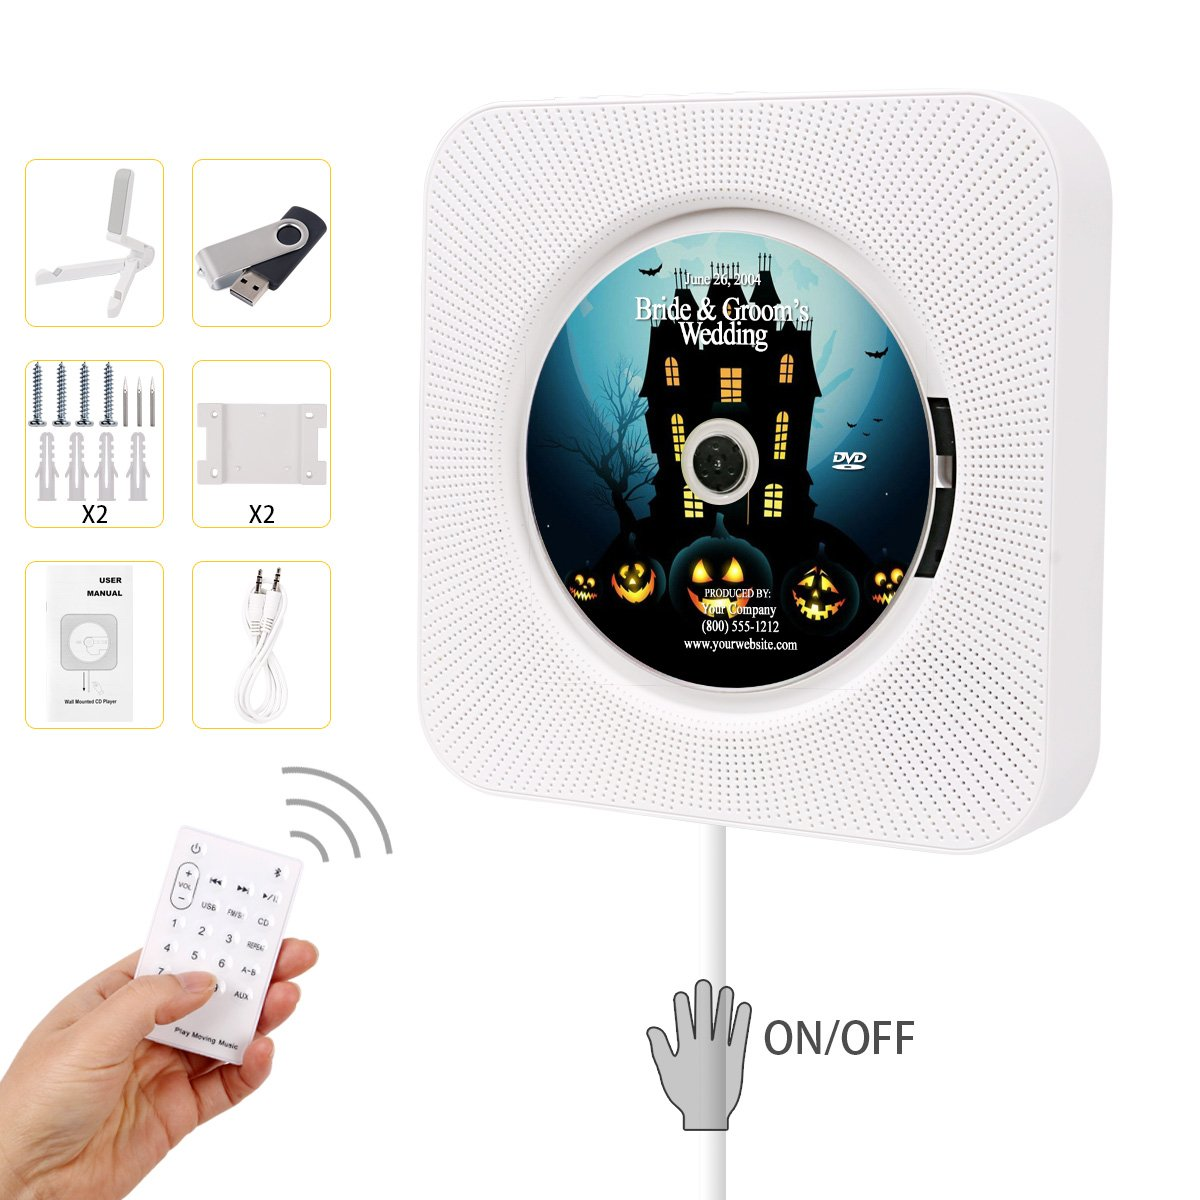 Beatife Bluetooth CD Player, Upgraded Wall Mounted Multipurpose Player HiFi Speaker Full-band FM Radio with Remote Control USB Drive AUX in & 3.5mm Headphone Jack Support A-B Repeat with 16G U-Disk